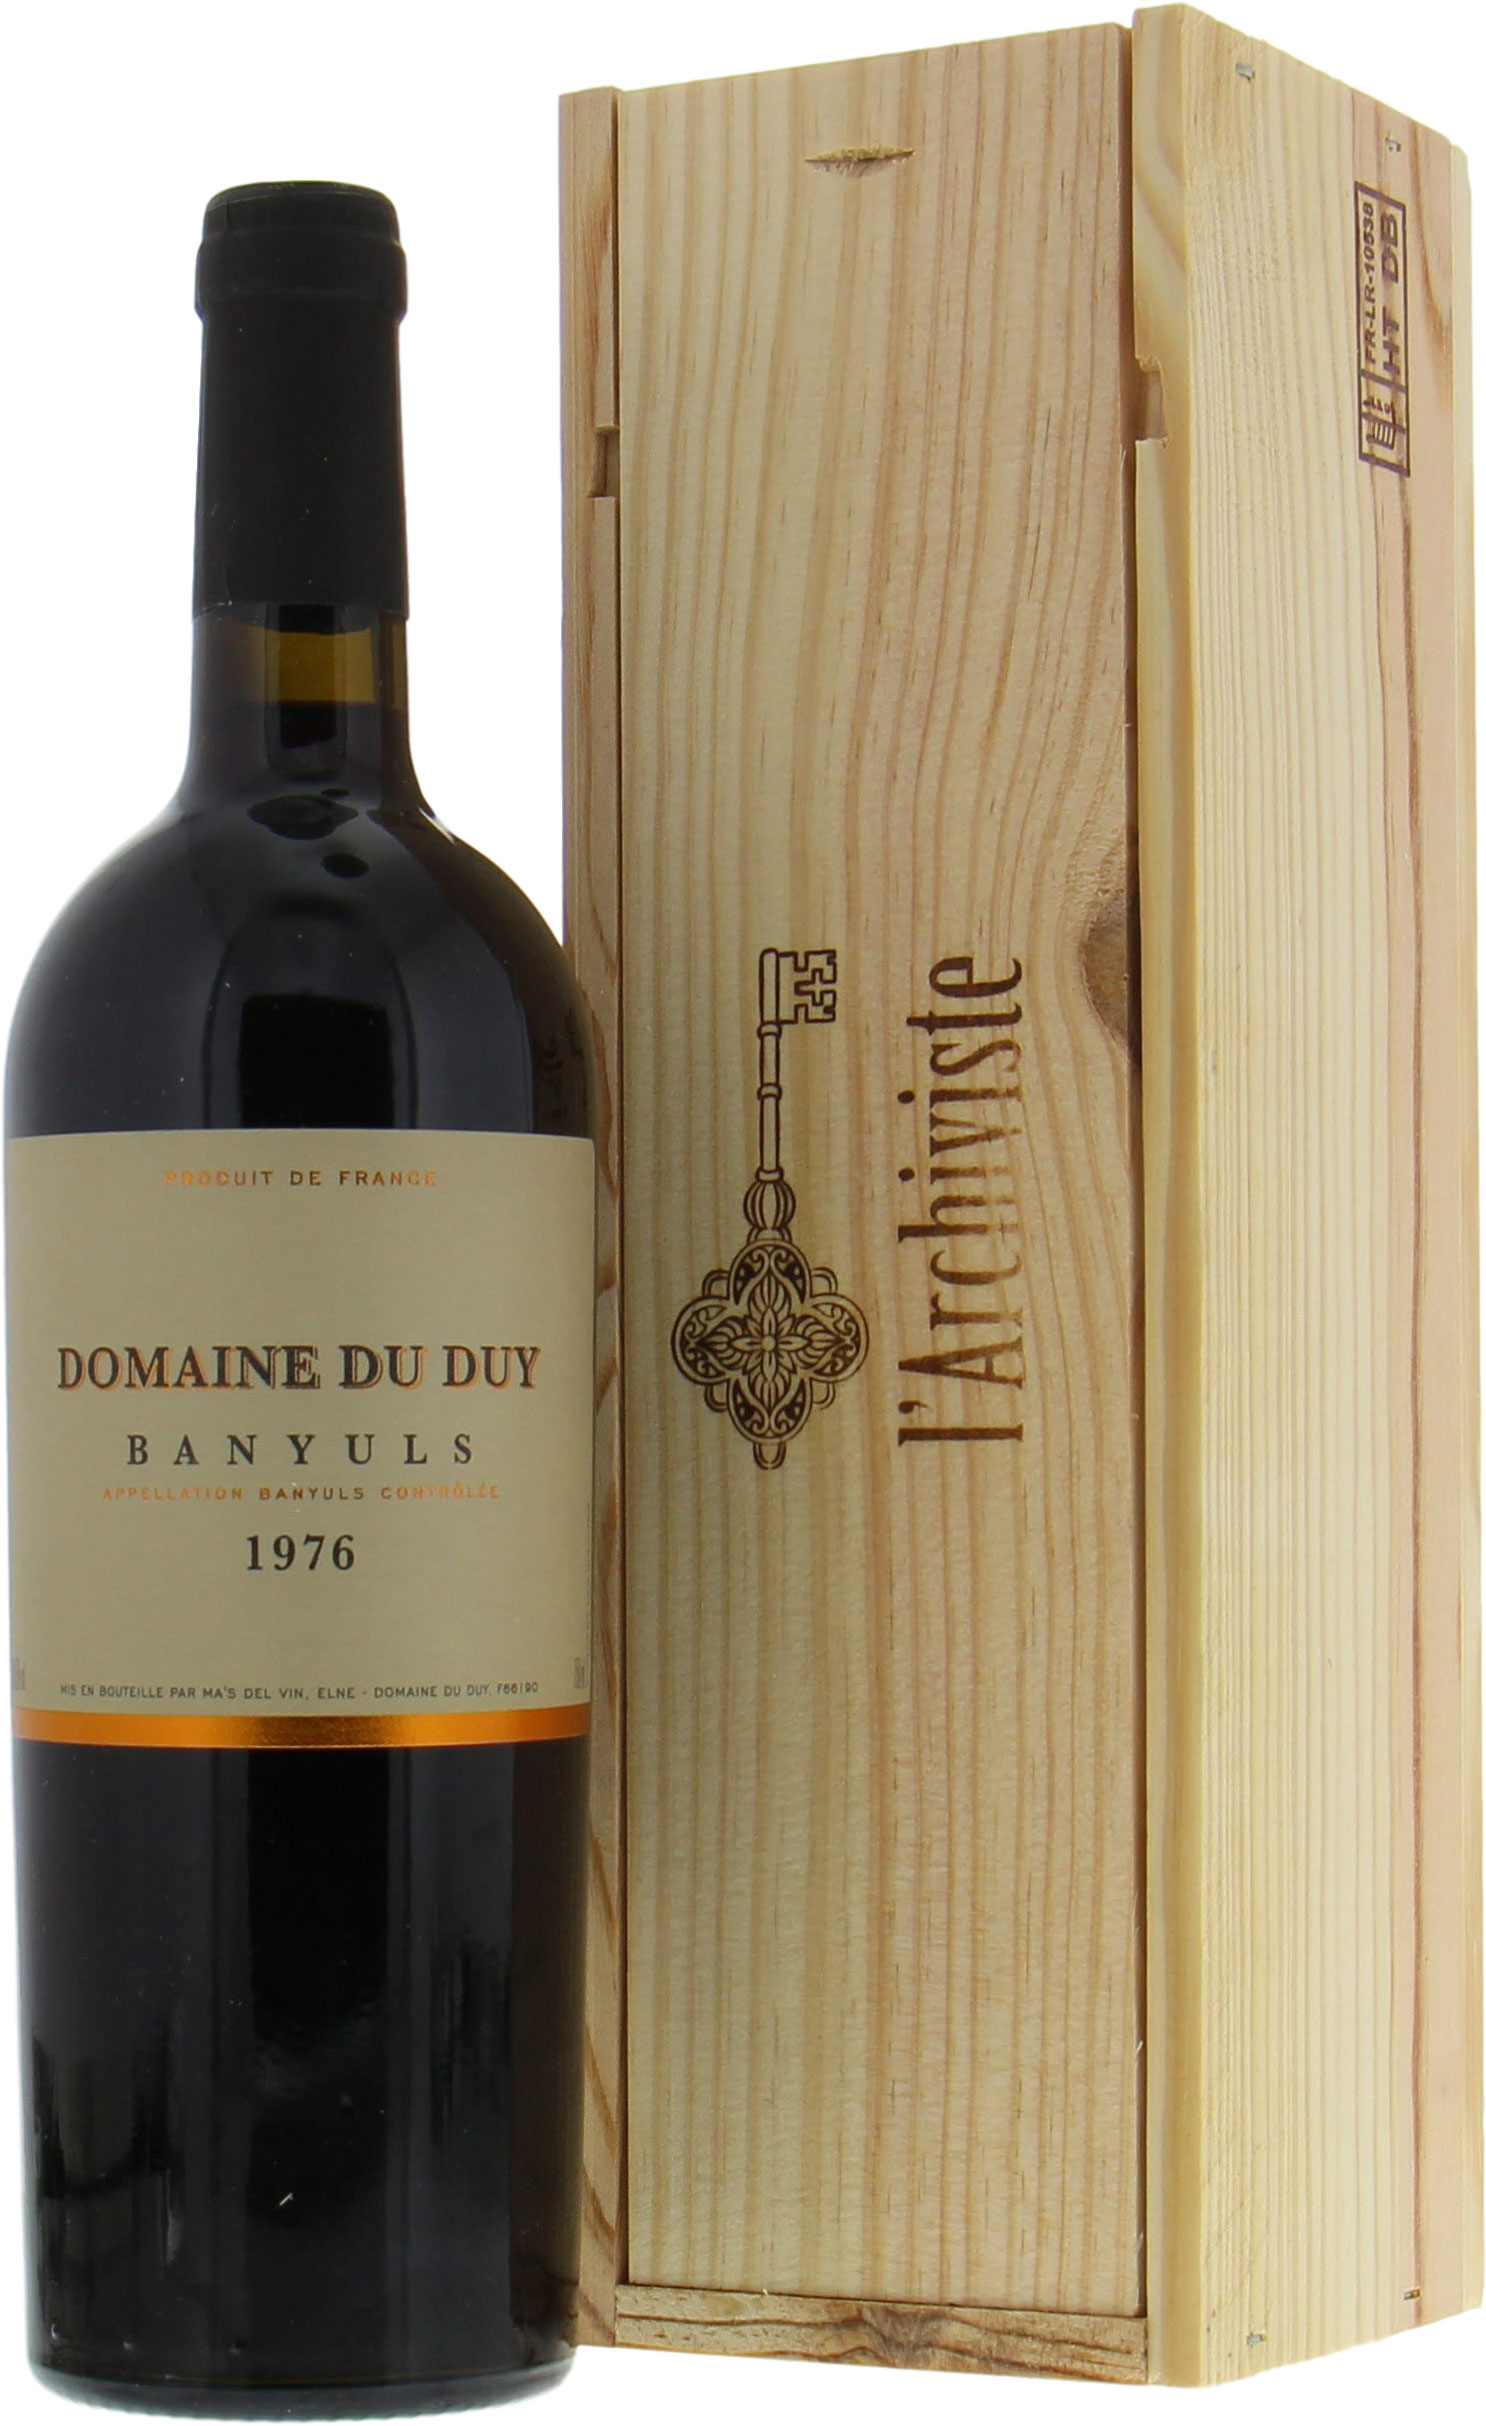 Domaine du Duy - Banyuls 1976